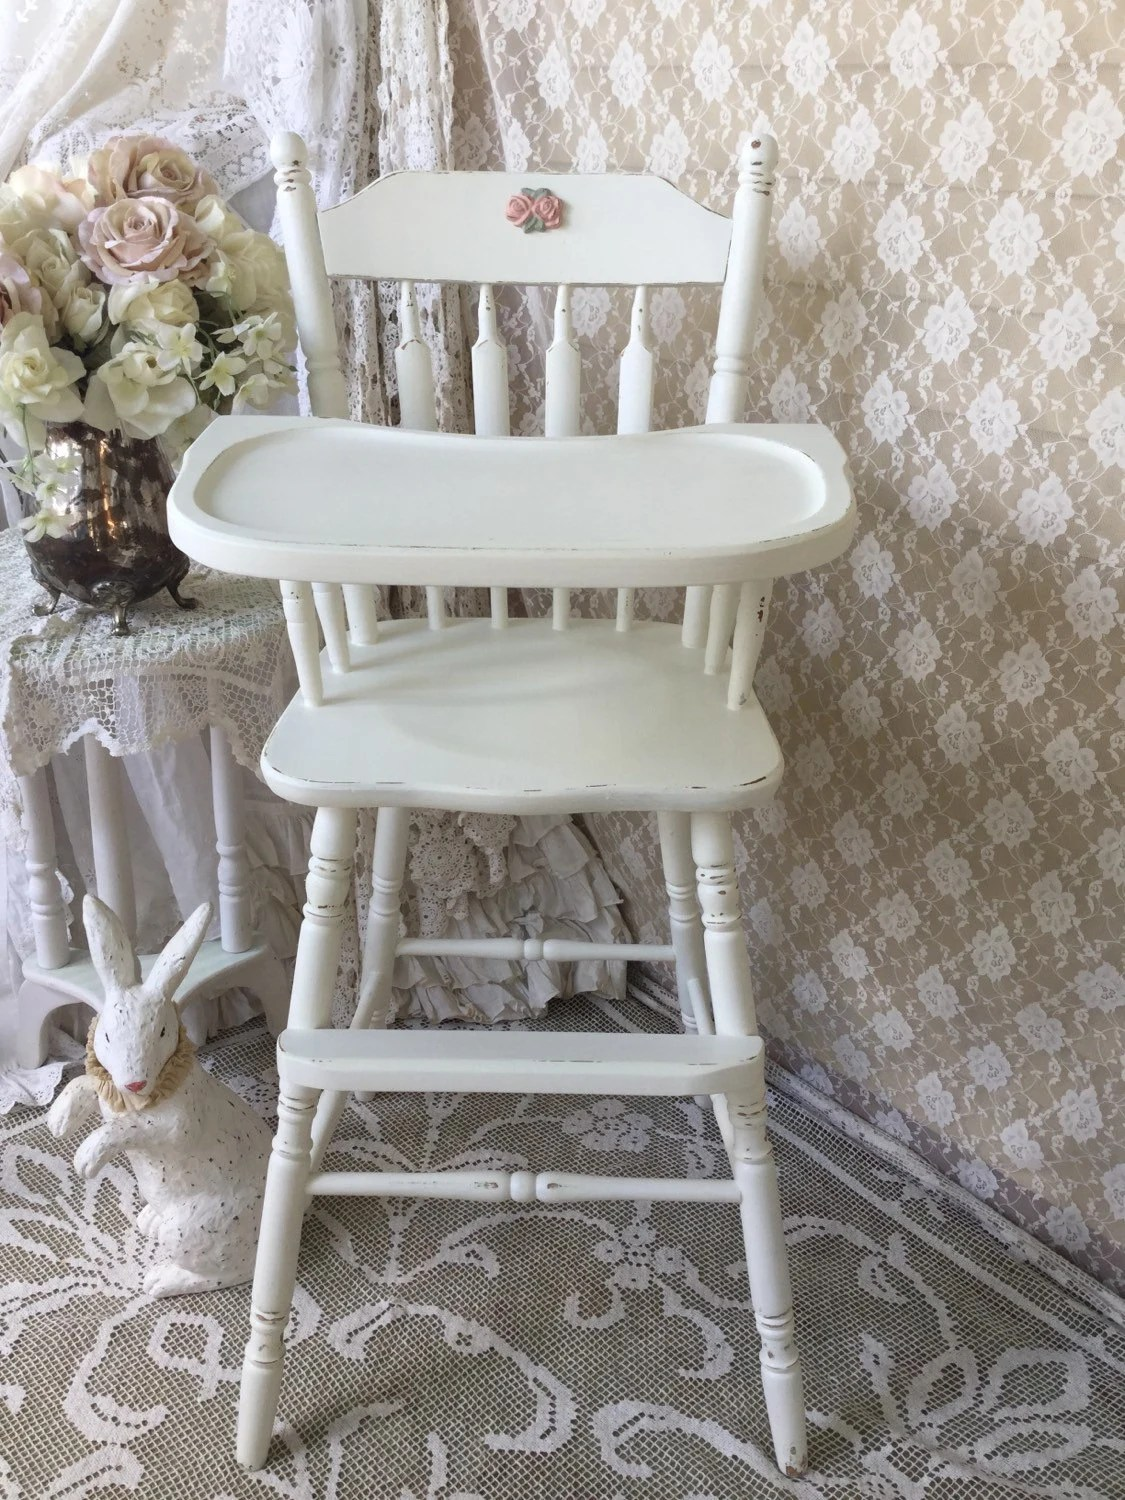 wooden high chairs for babies chair gym exercise routine reserved shabby white vintage baby